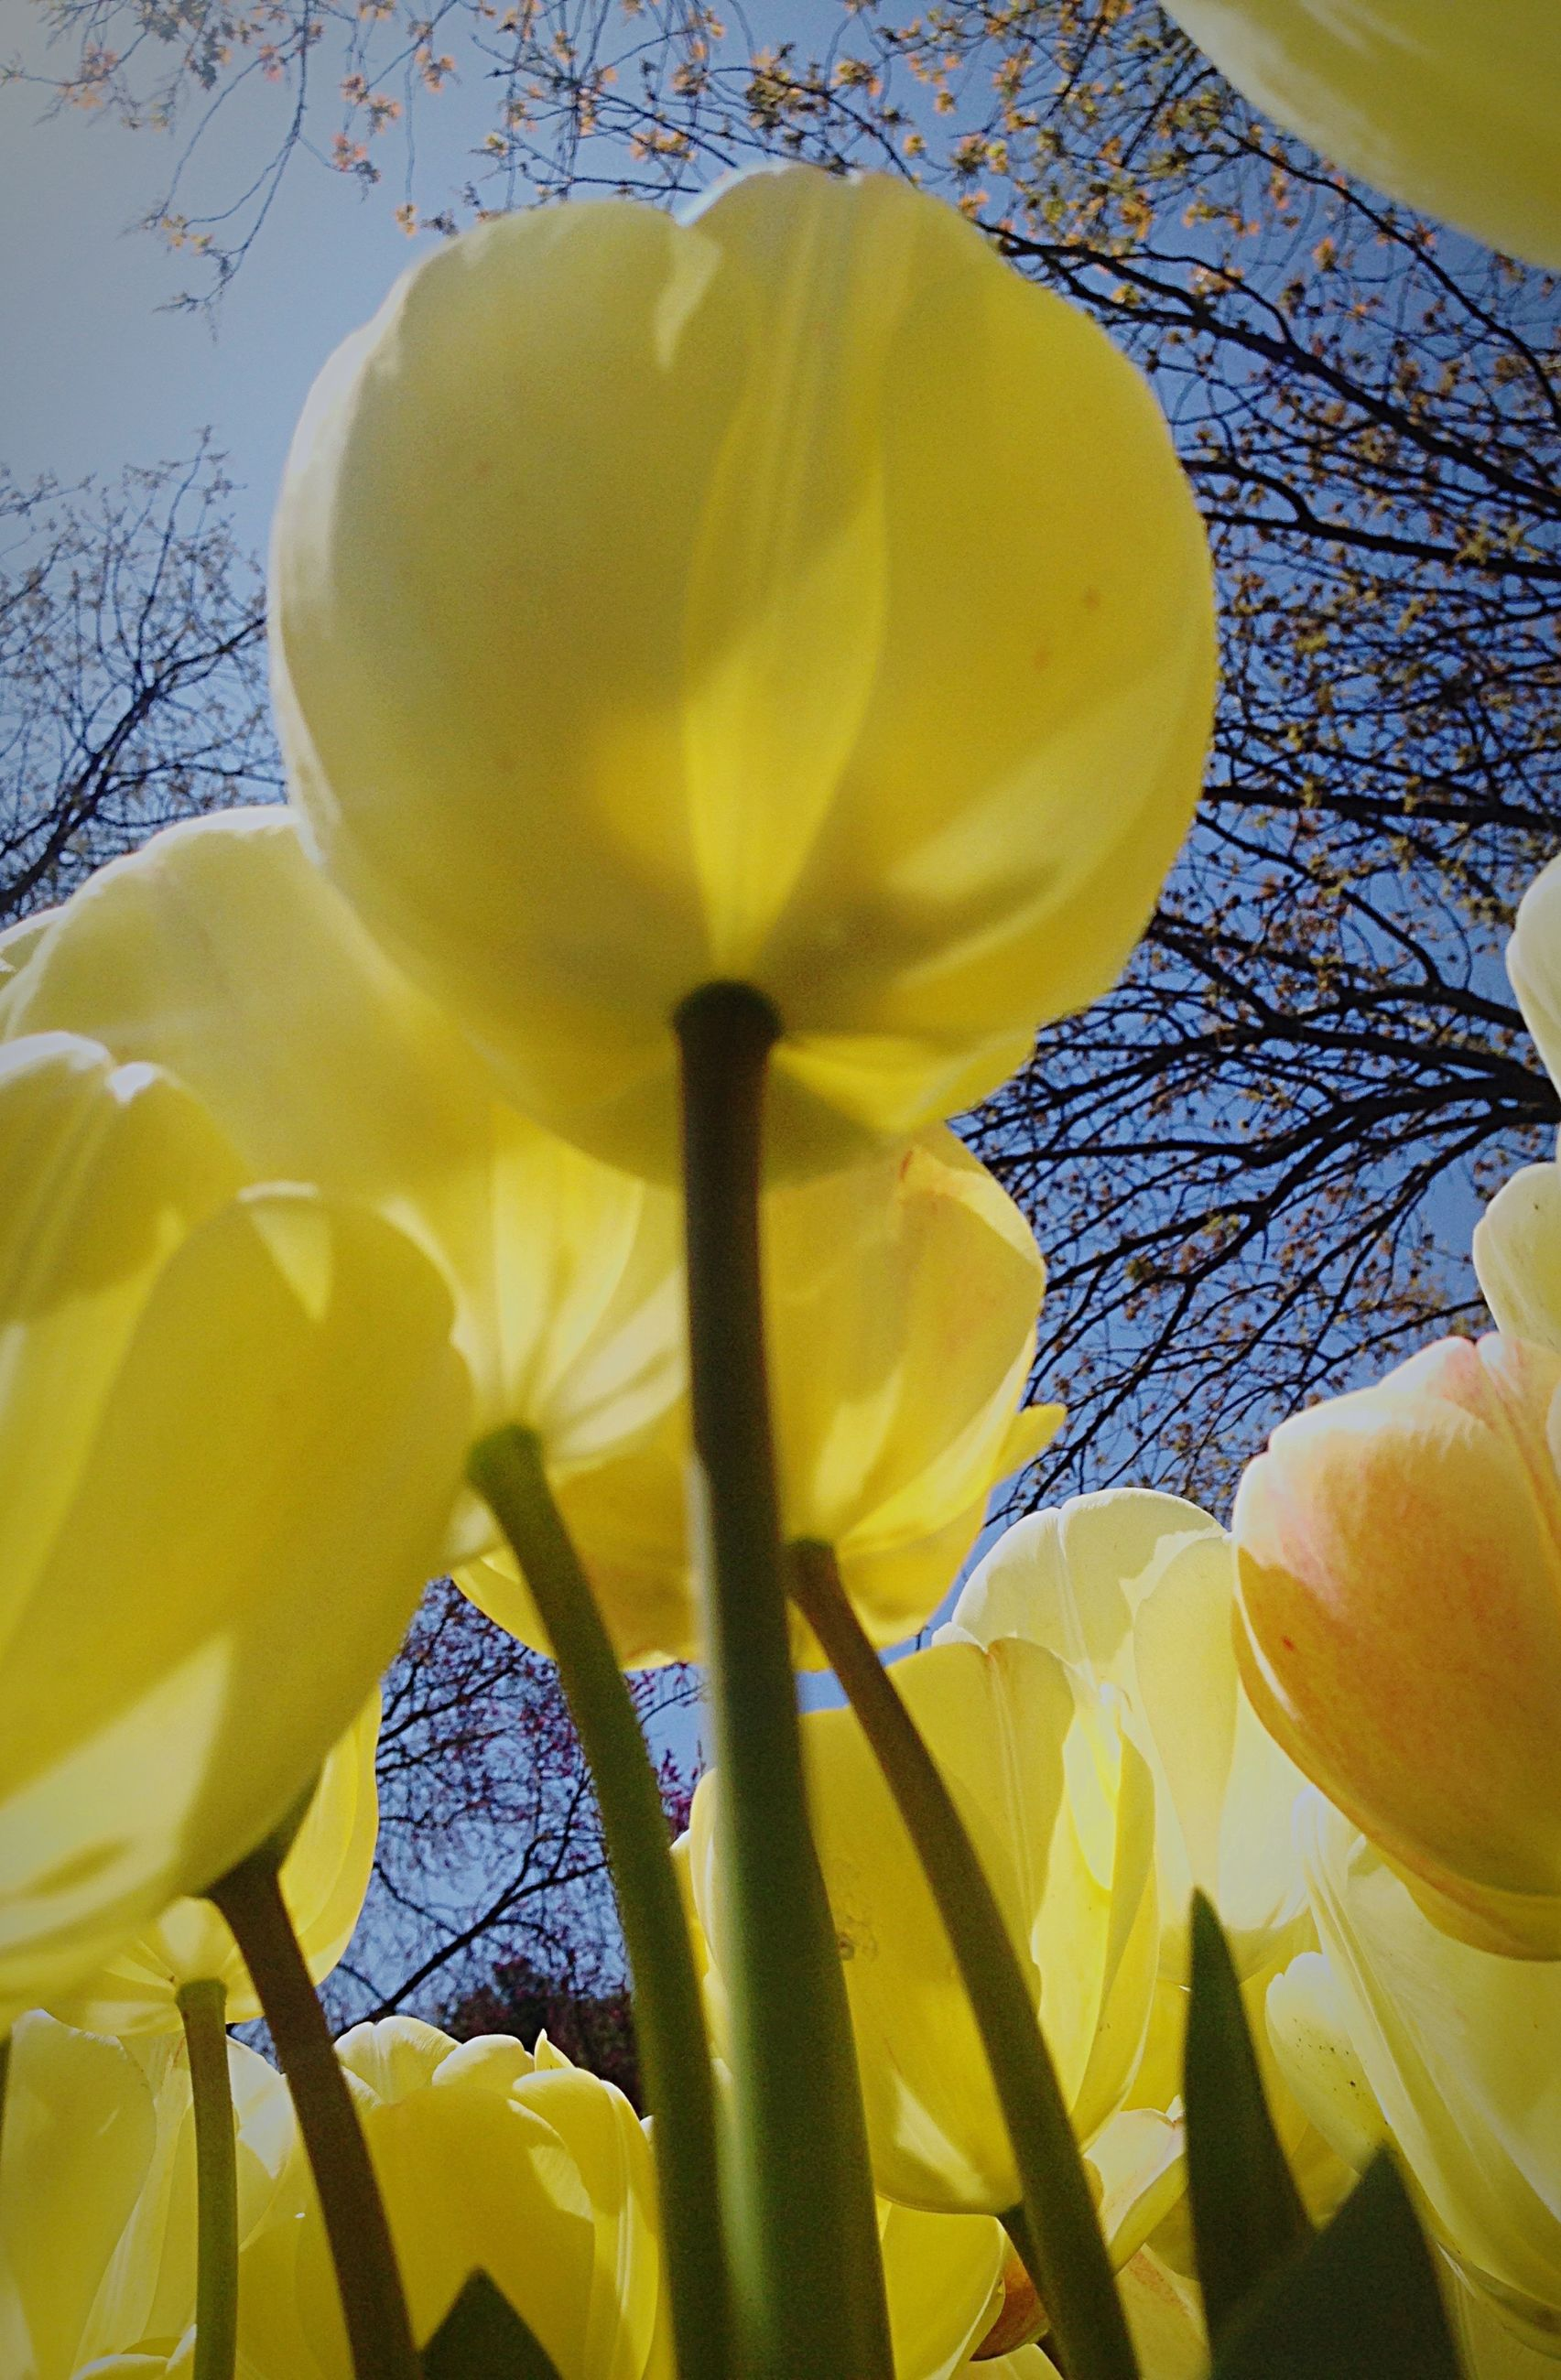 flower, petal, yellow, flower head, freshness, fragility, beauty in nature, growth, nature, close-up, blooming, tulip, single flower, plant, in bloom, stamen, white color, no people, blossom, sunlight